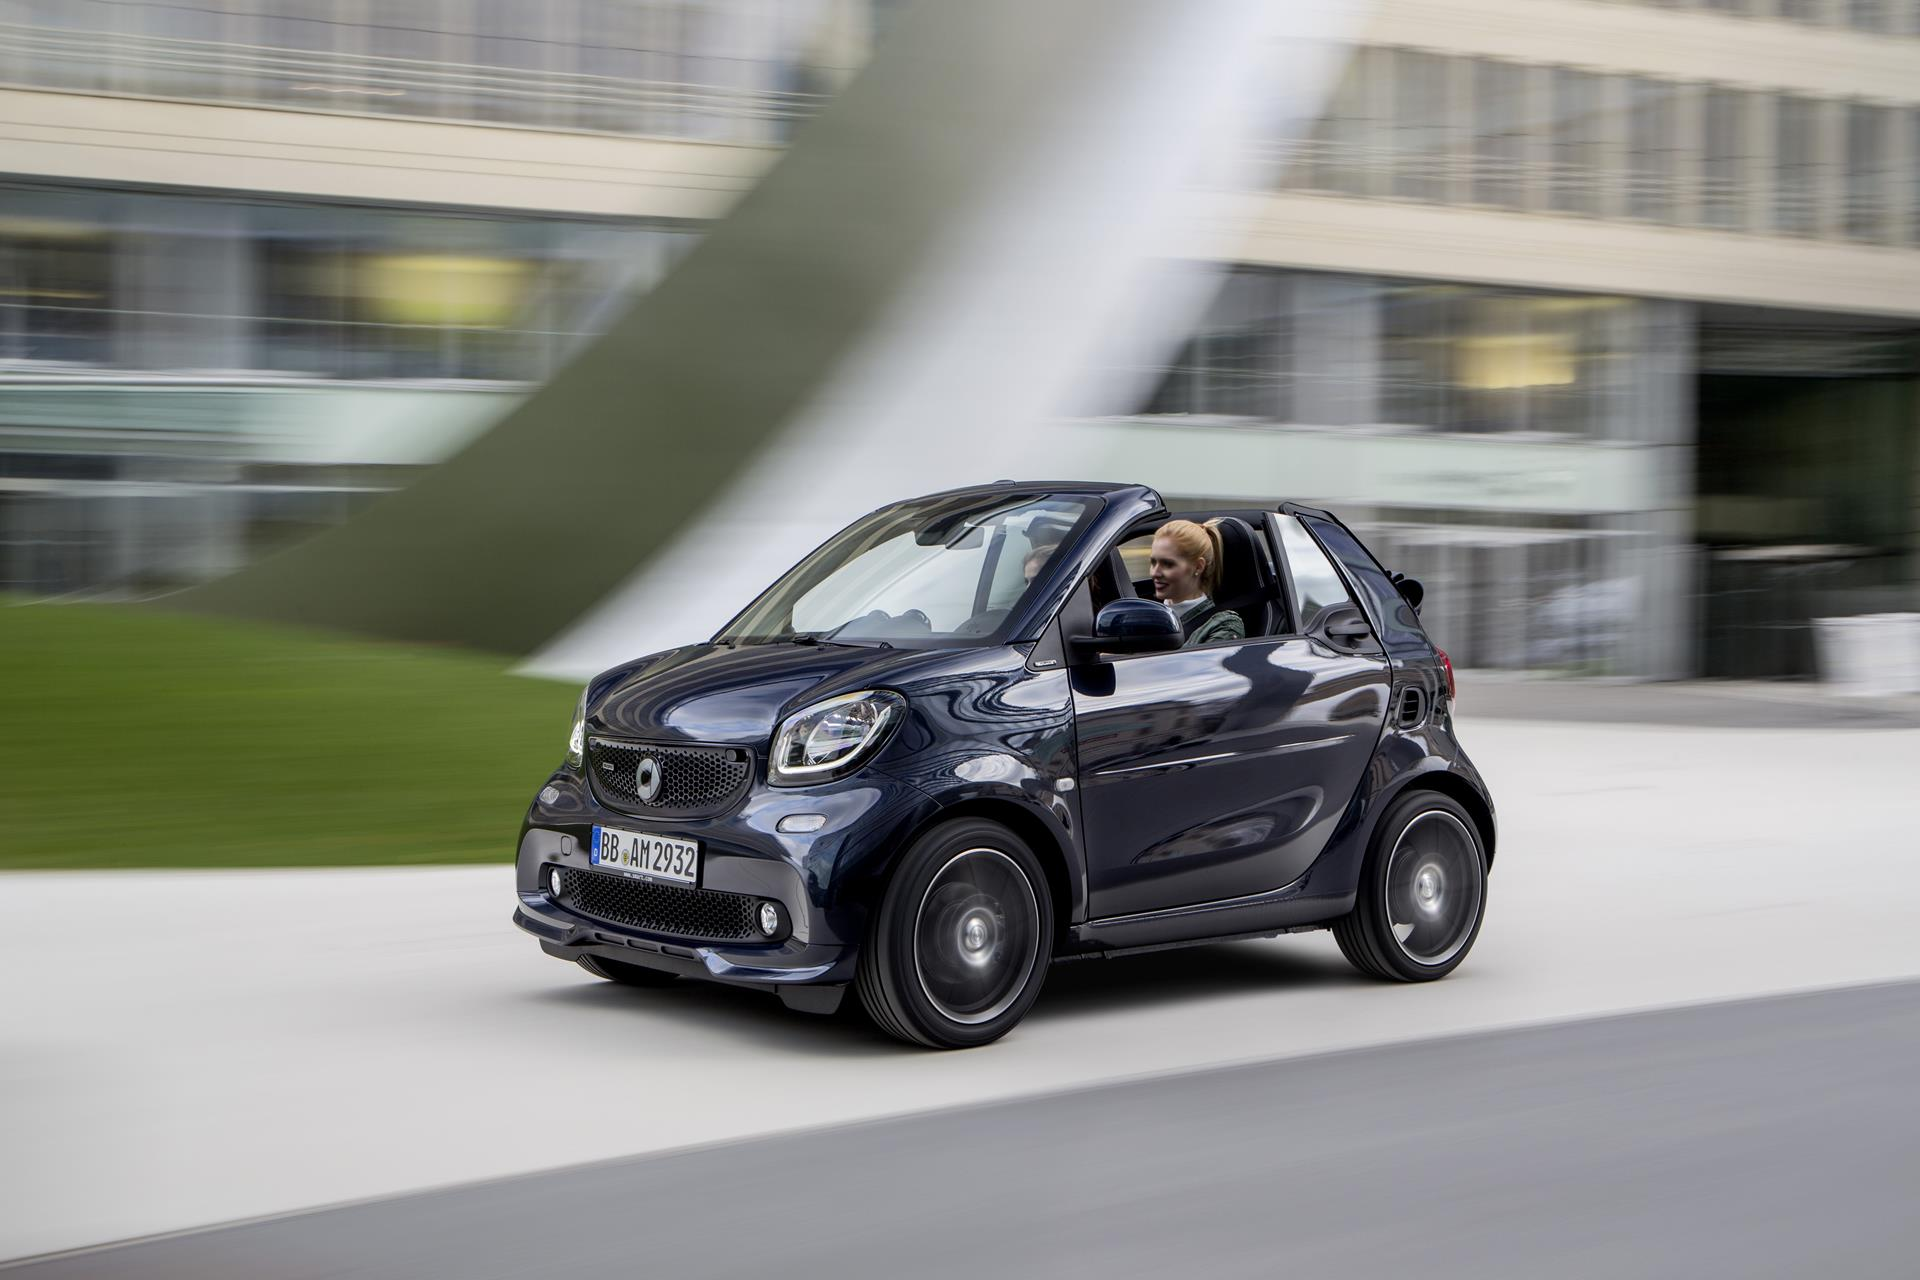 2016 brabus fortwo cabriolet news and information. Black Bedroom Furniture Sets. Home Design Ideas